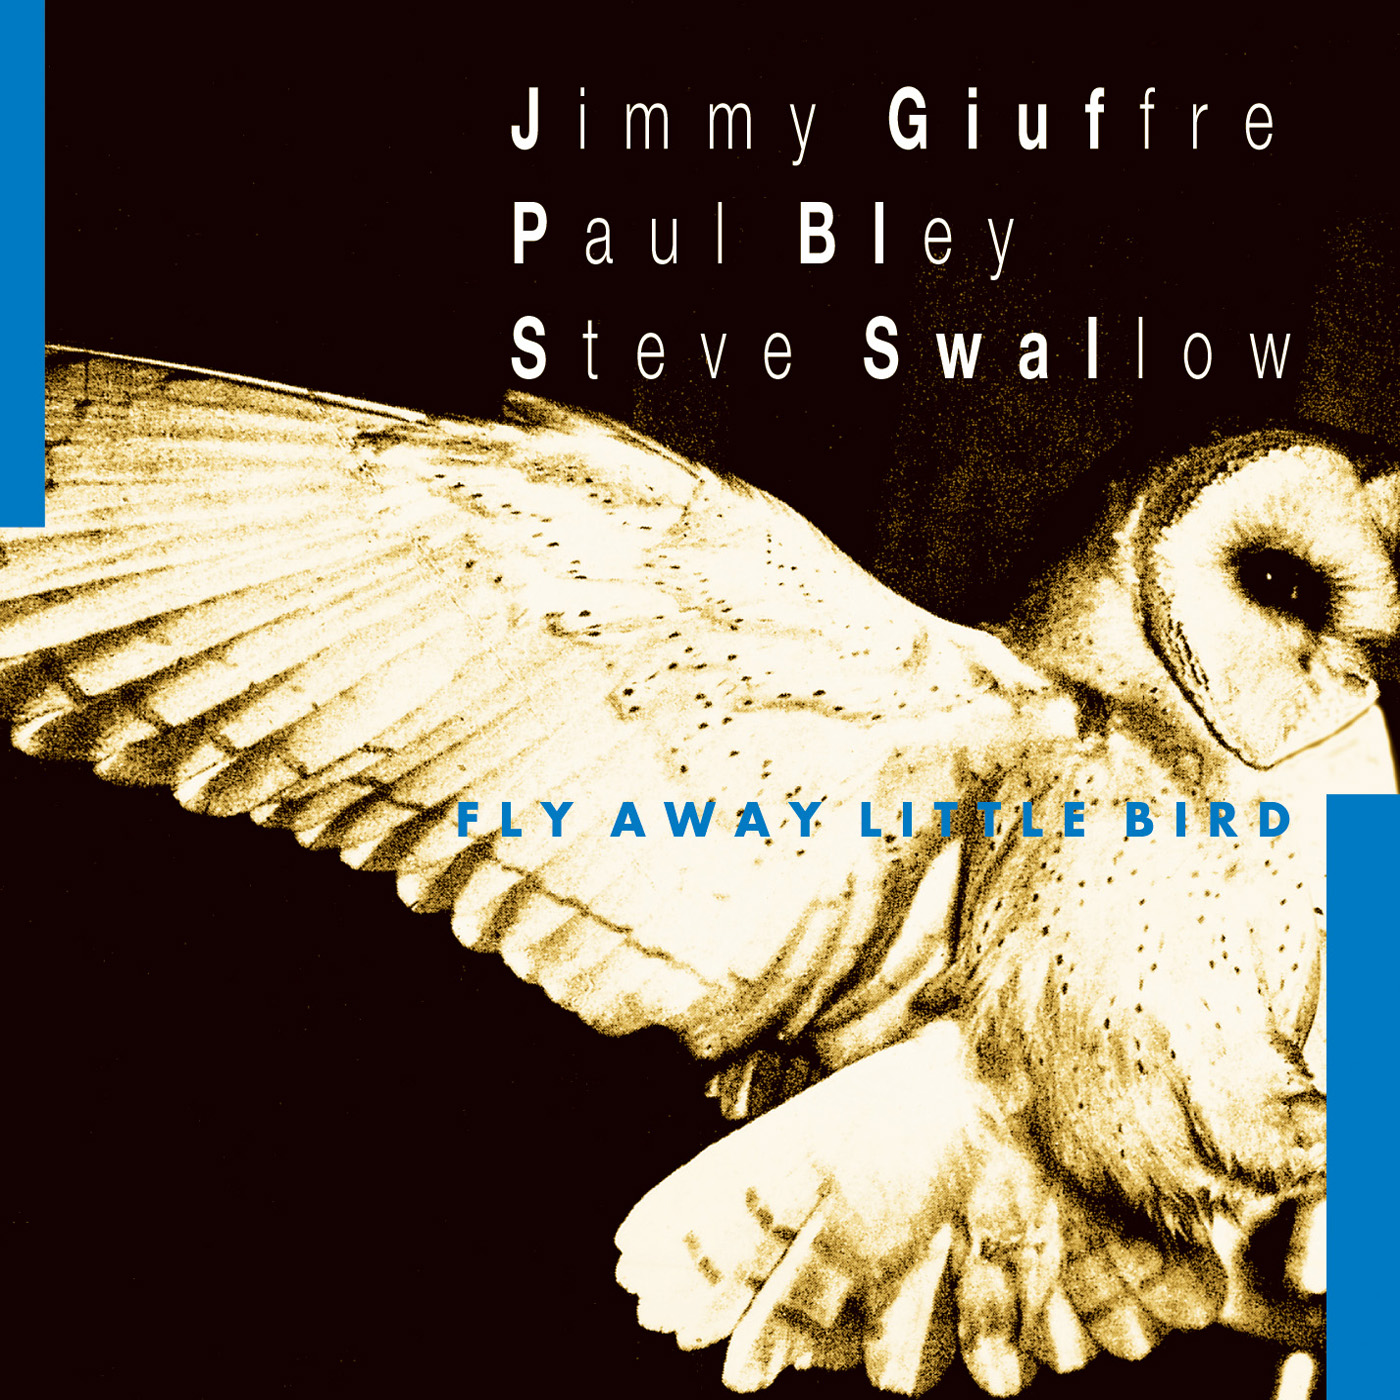 Fly Away Little Bird by Jimmy Giuffre - Paul Bley - Steve Swallow cover